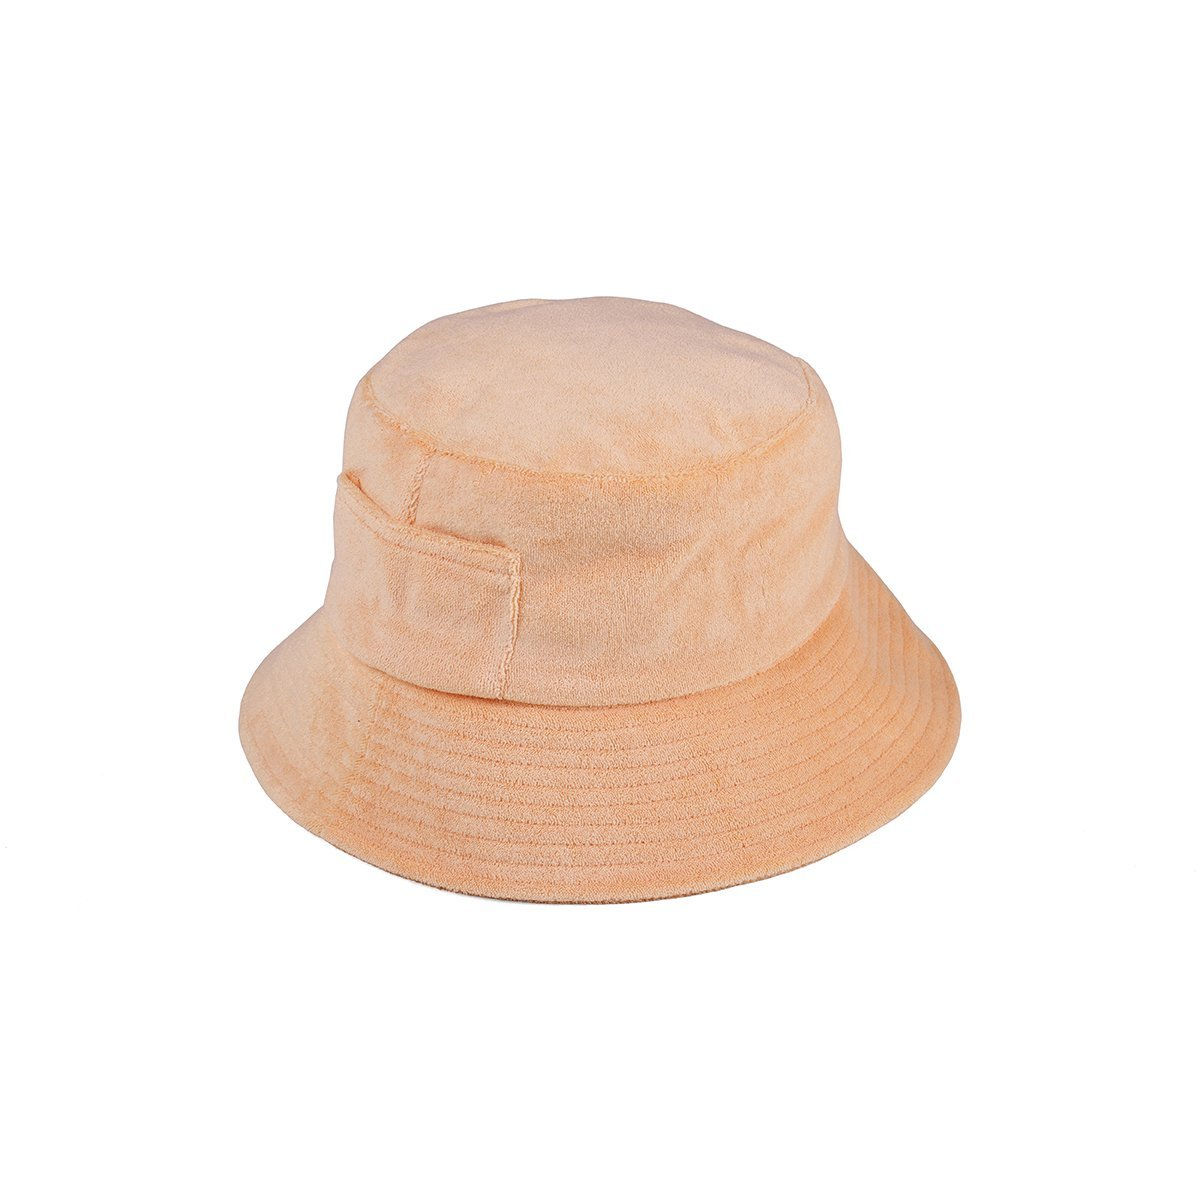 wave bucket by wave bucket, available on lackofcolor.com for $99 Elsa Hosk Hat Exact Product